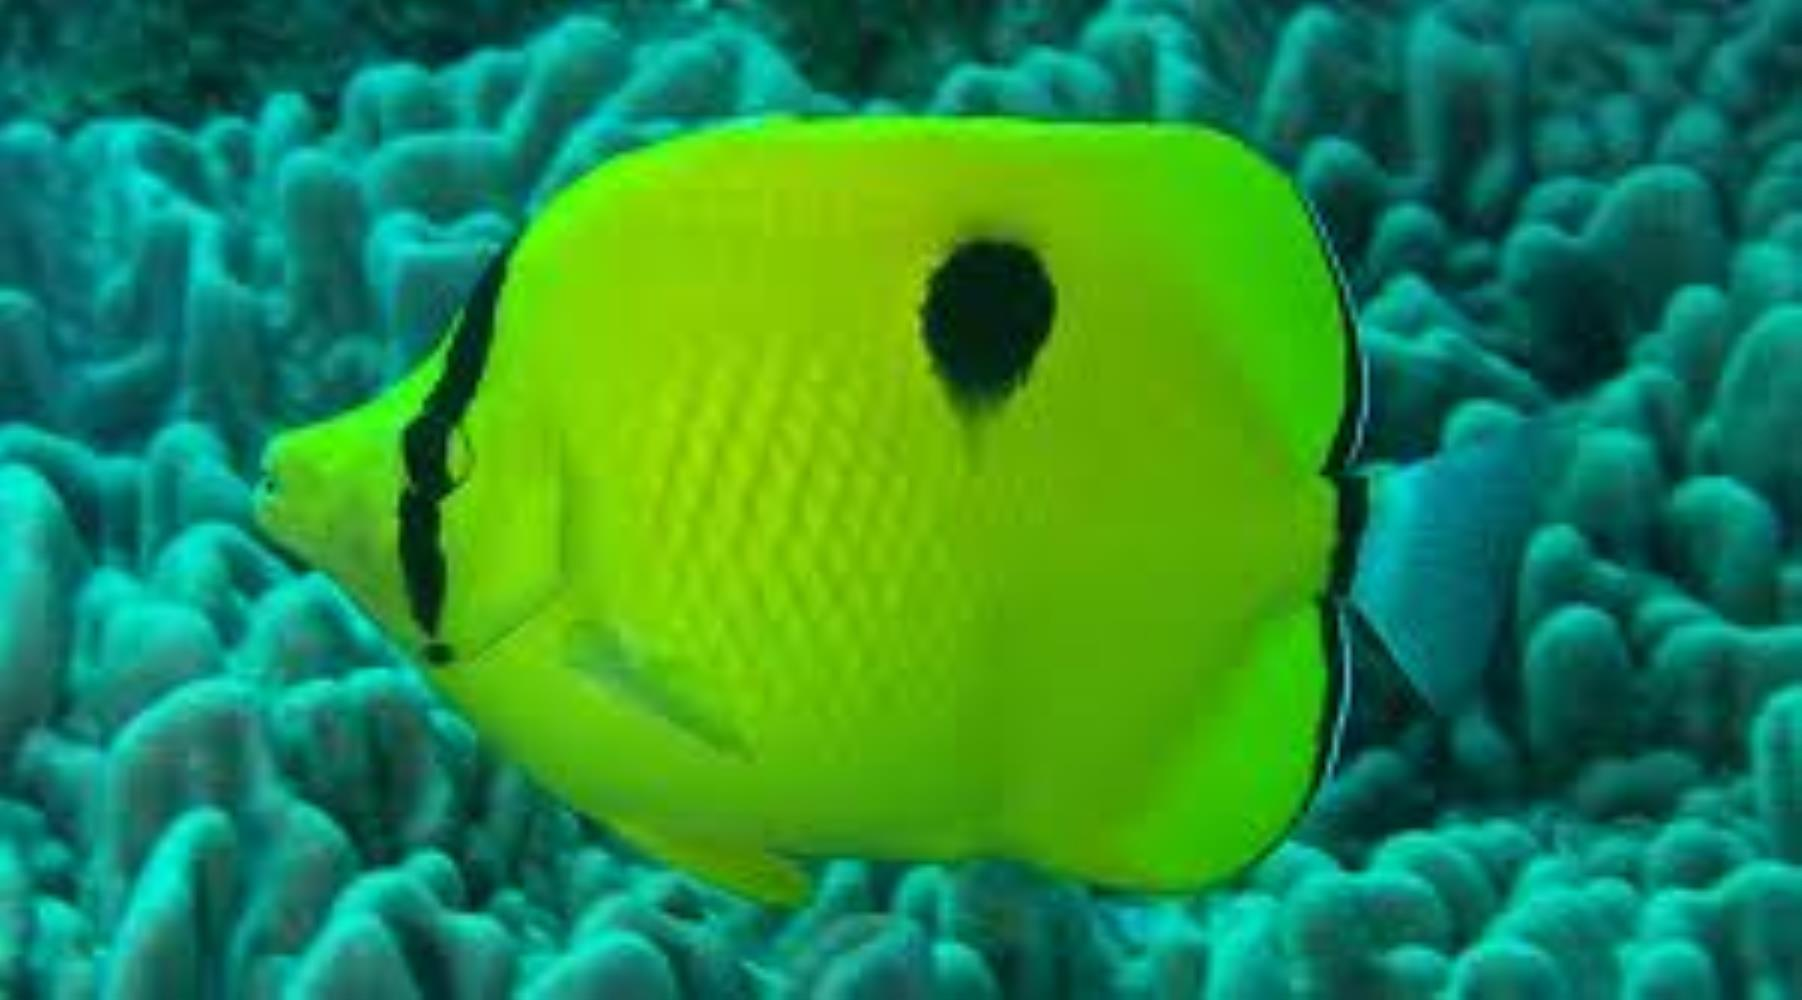 Yellow Teardrop Butterflyfish